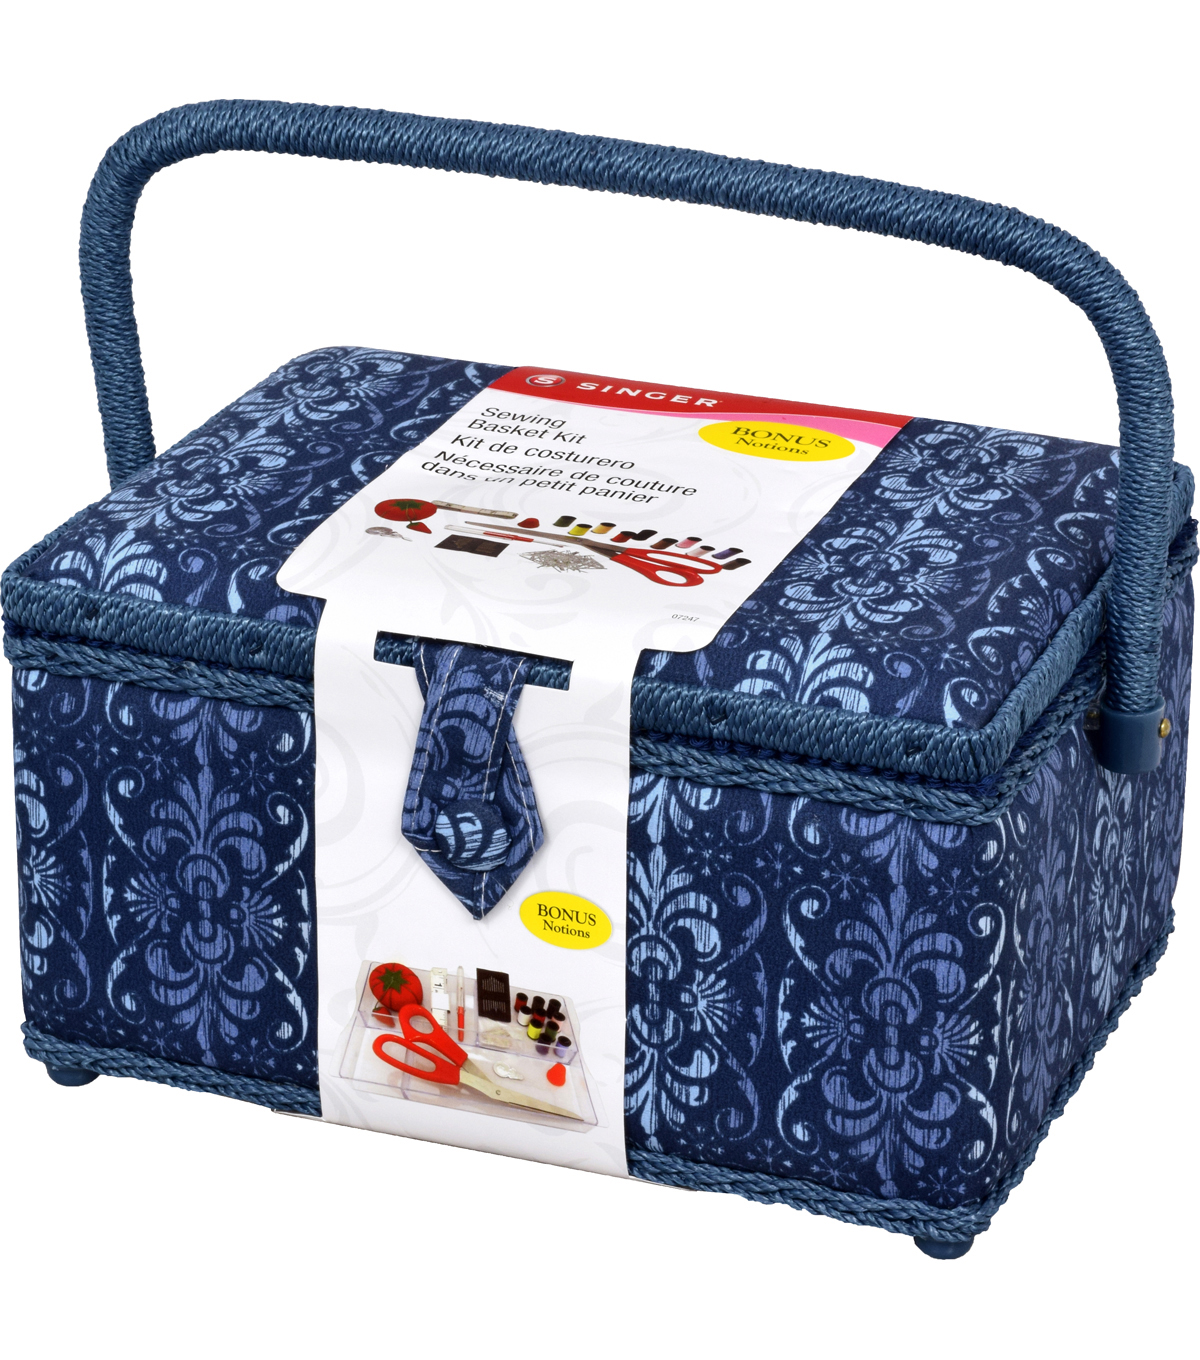 Singer® Large Sewing Basket with Notions Kit-Chambray Ombre